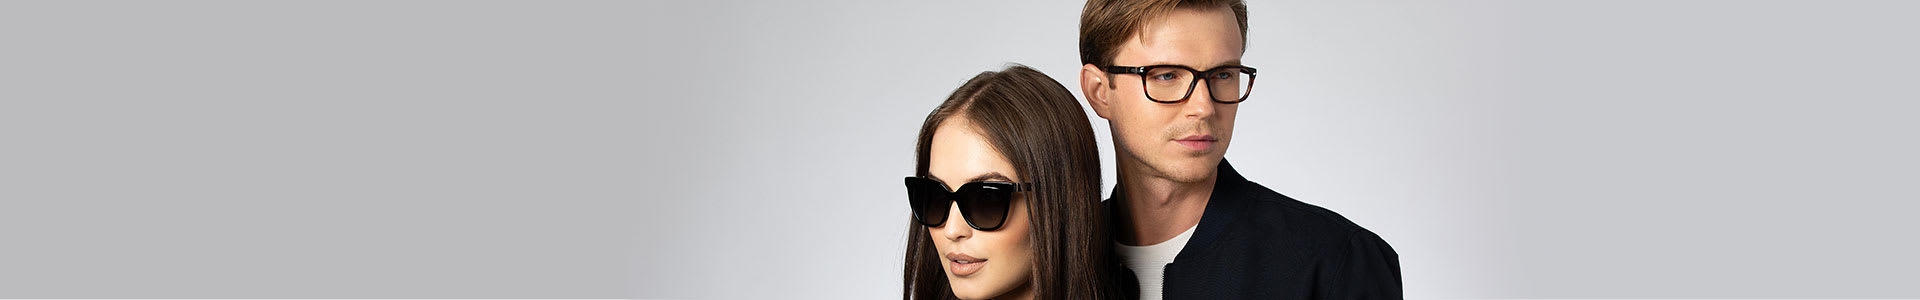 The Latest Eyewear Styles for Men & Women